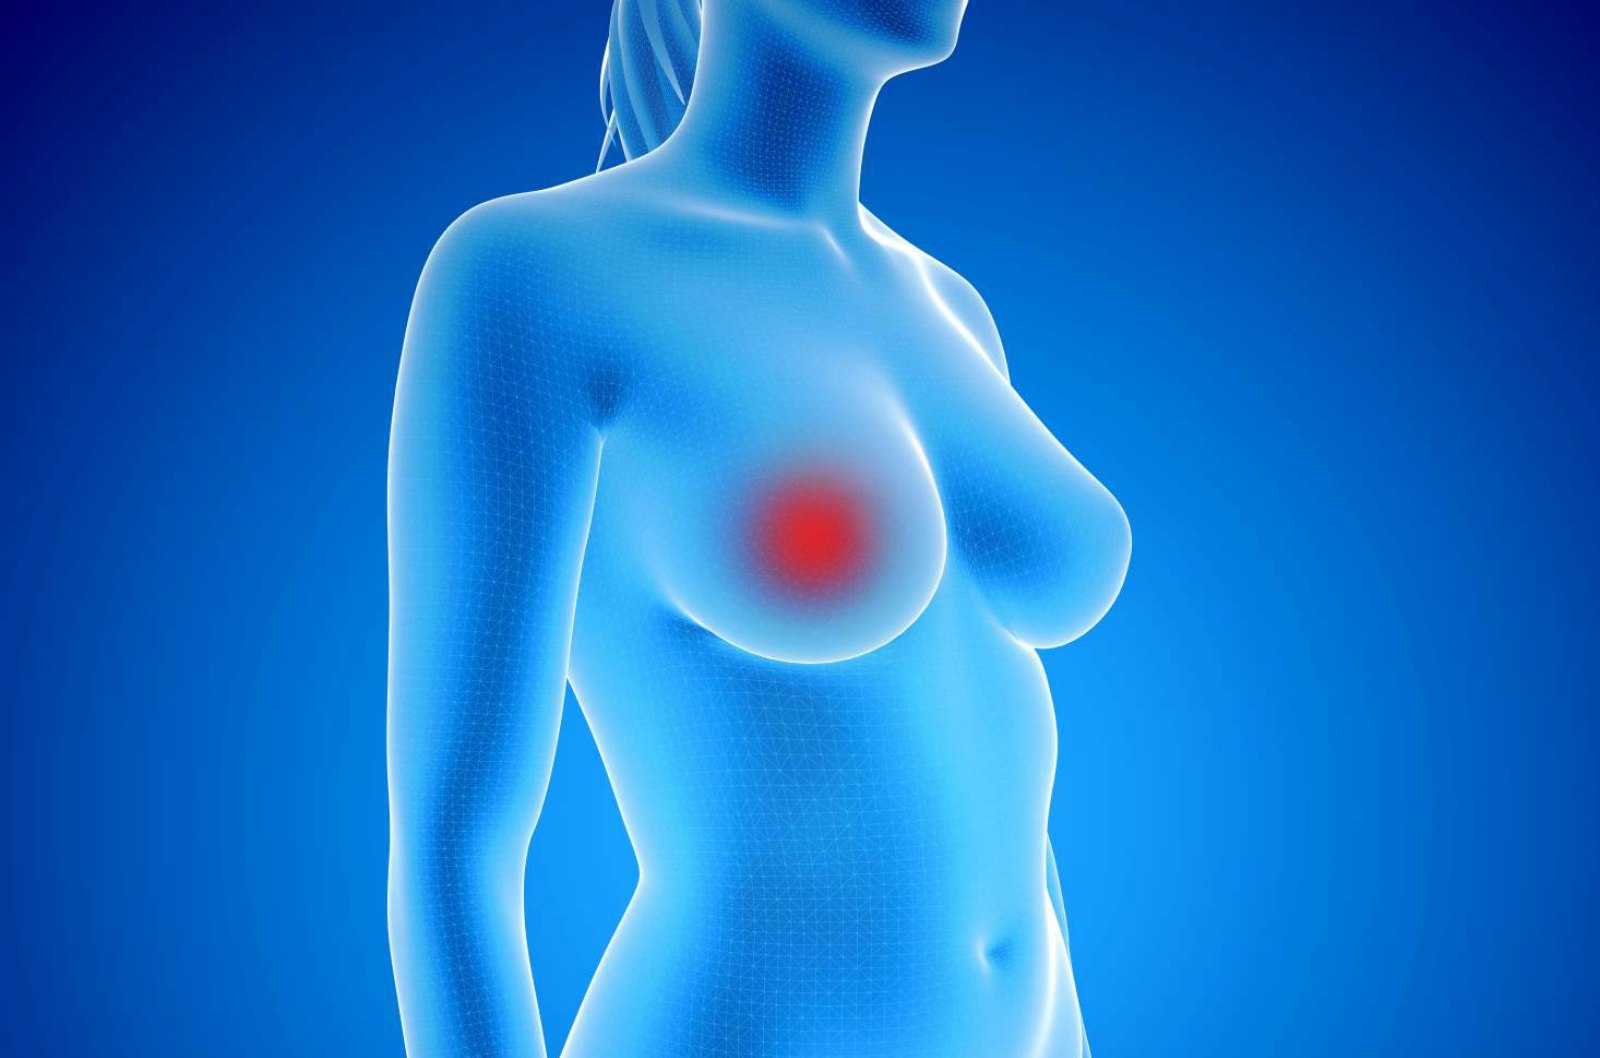 Tumor Marker Assay Helps Identify the Recurrence of Breast Cancer